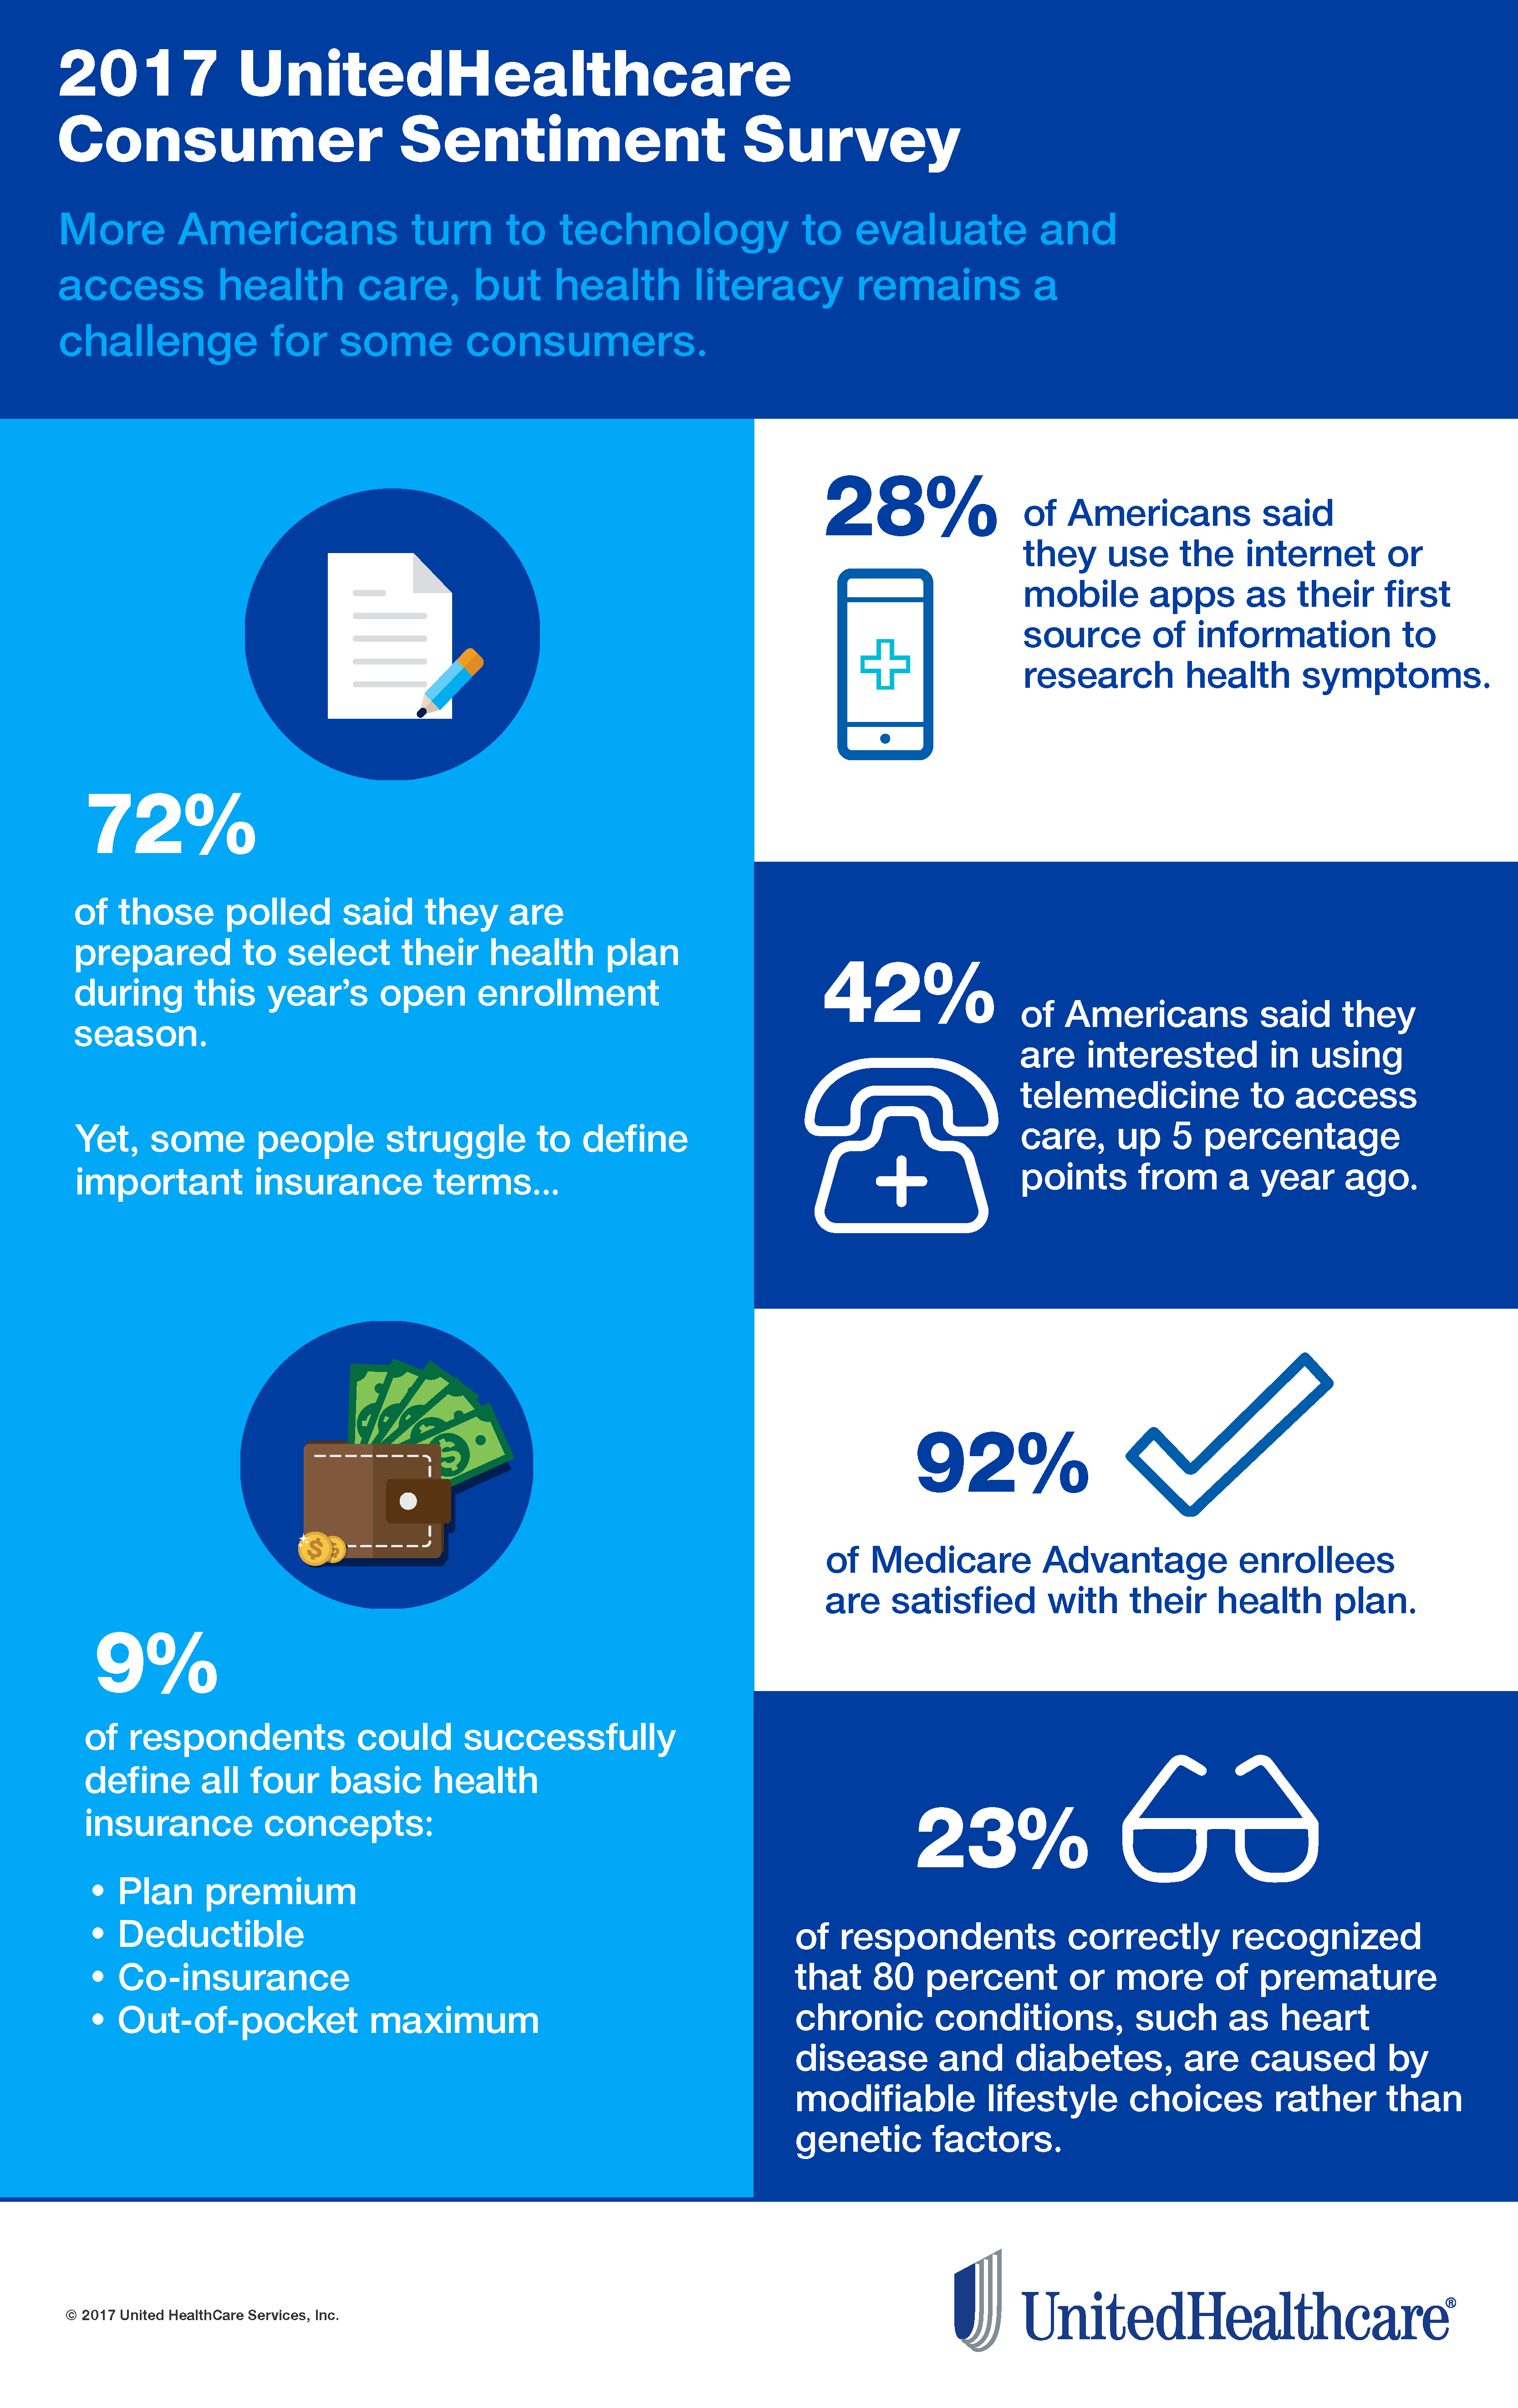 Infographic: Results of 2017 UnitedHealthcare Consumer Sentiment Survey